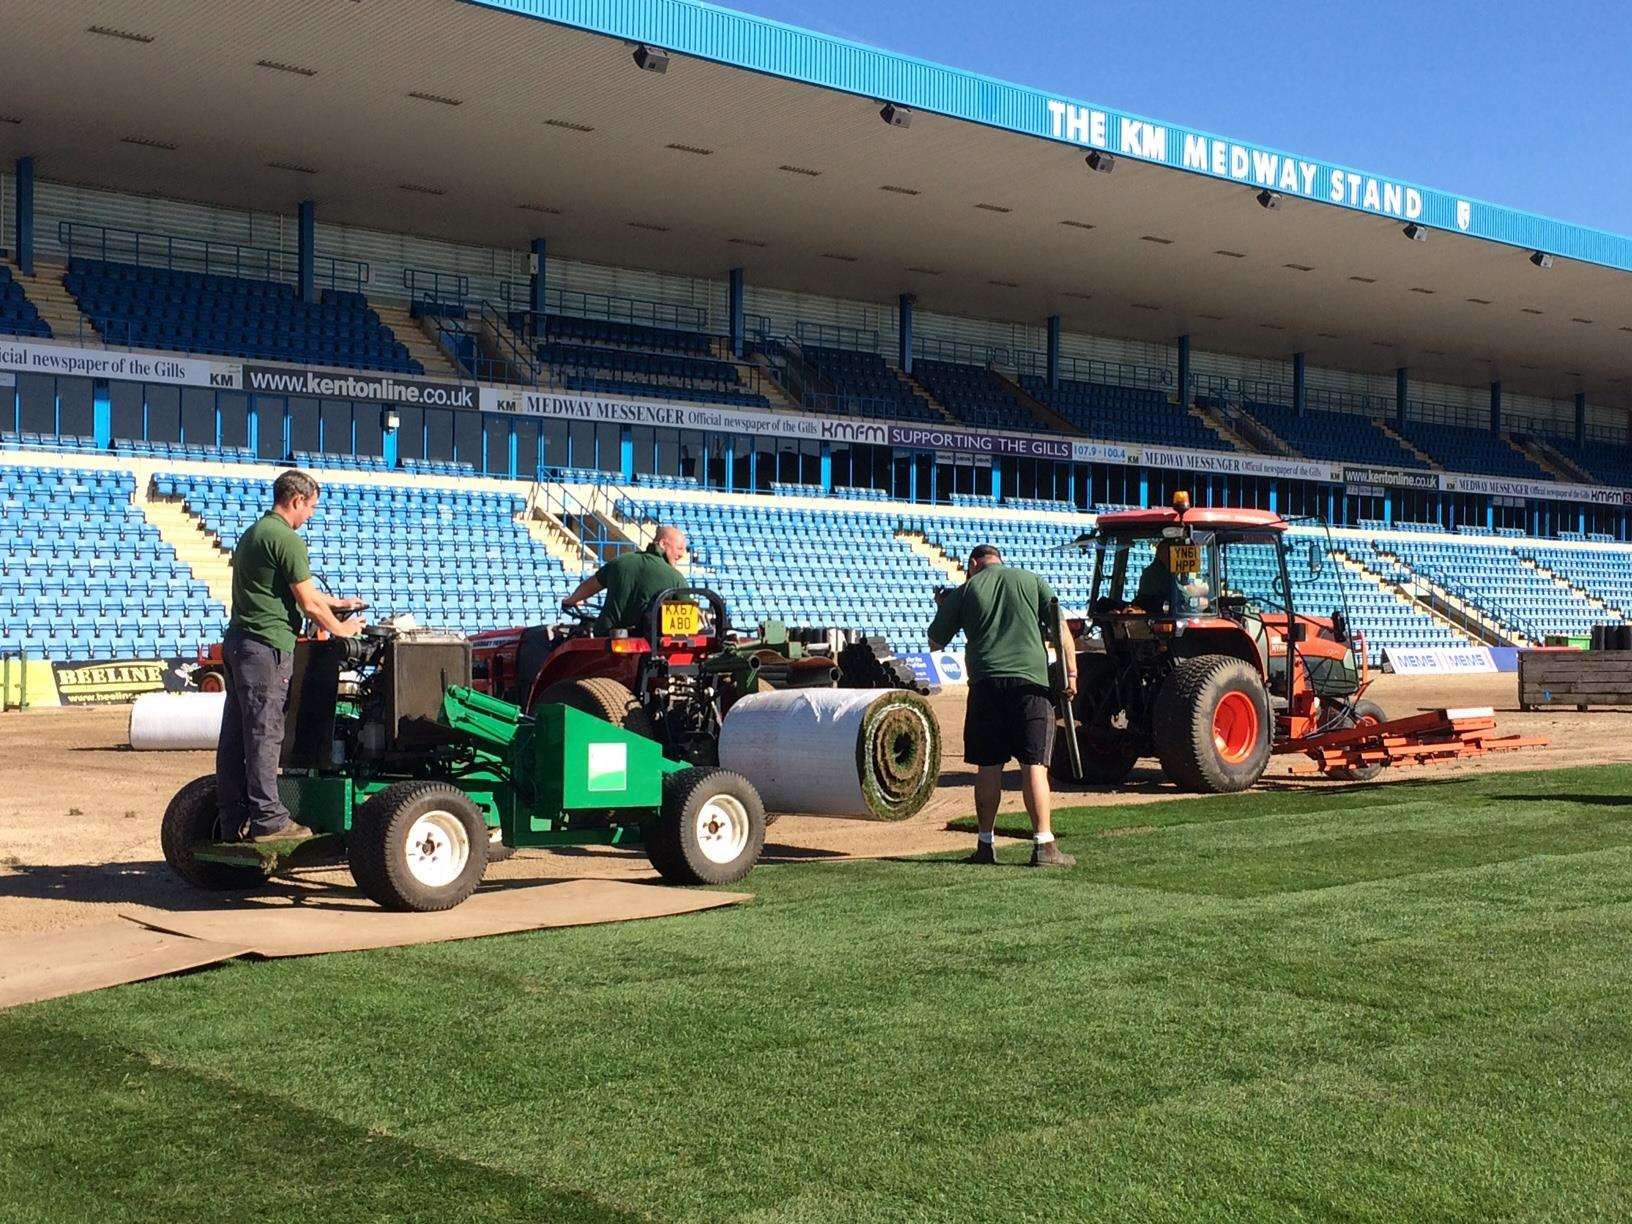 Gillingham's new hybird pitch is being laid Picture: KM (4692316)